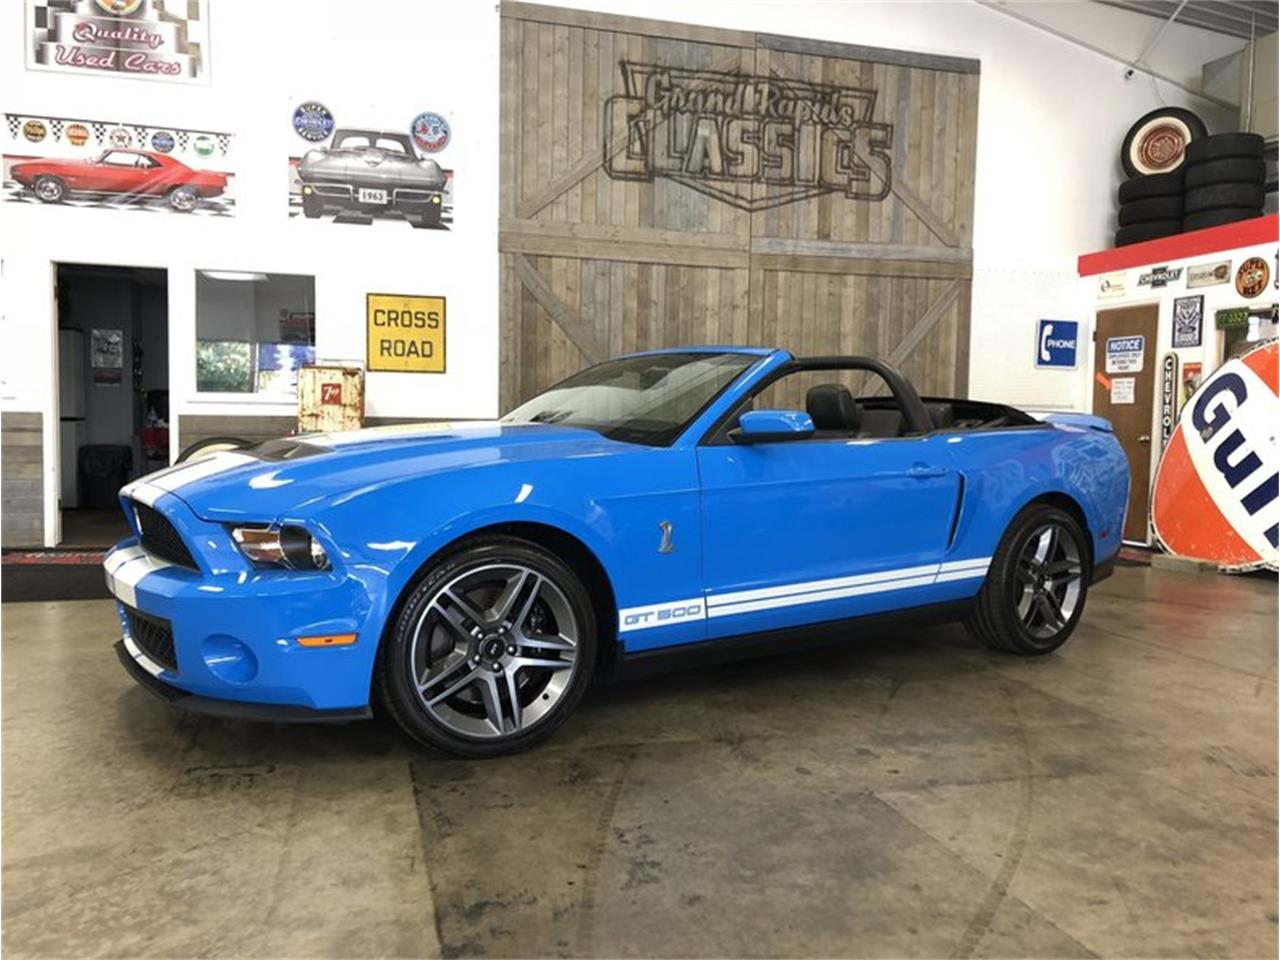 Large picture of 2010 mustang located in grand rapids michigan 30990 00 offered by grand rapids